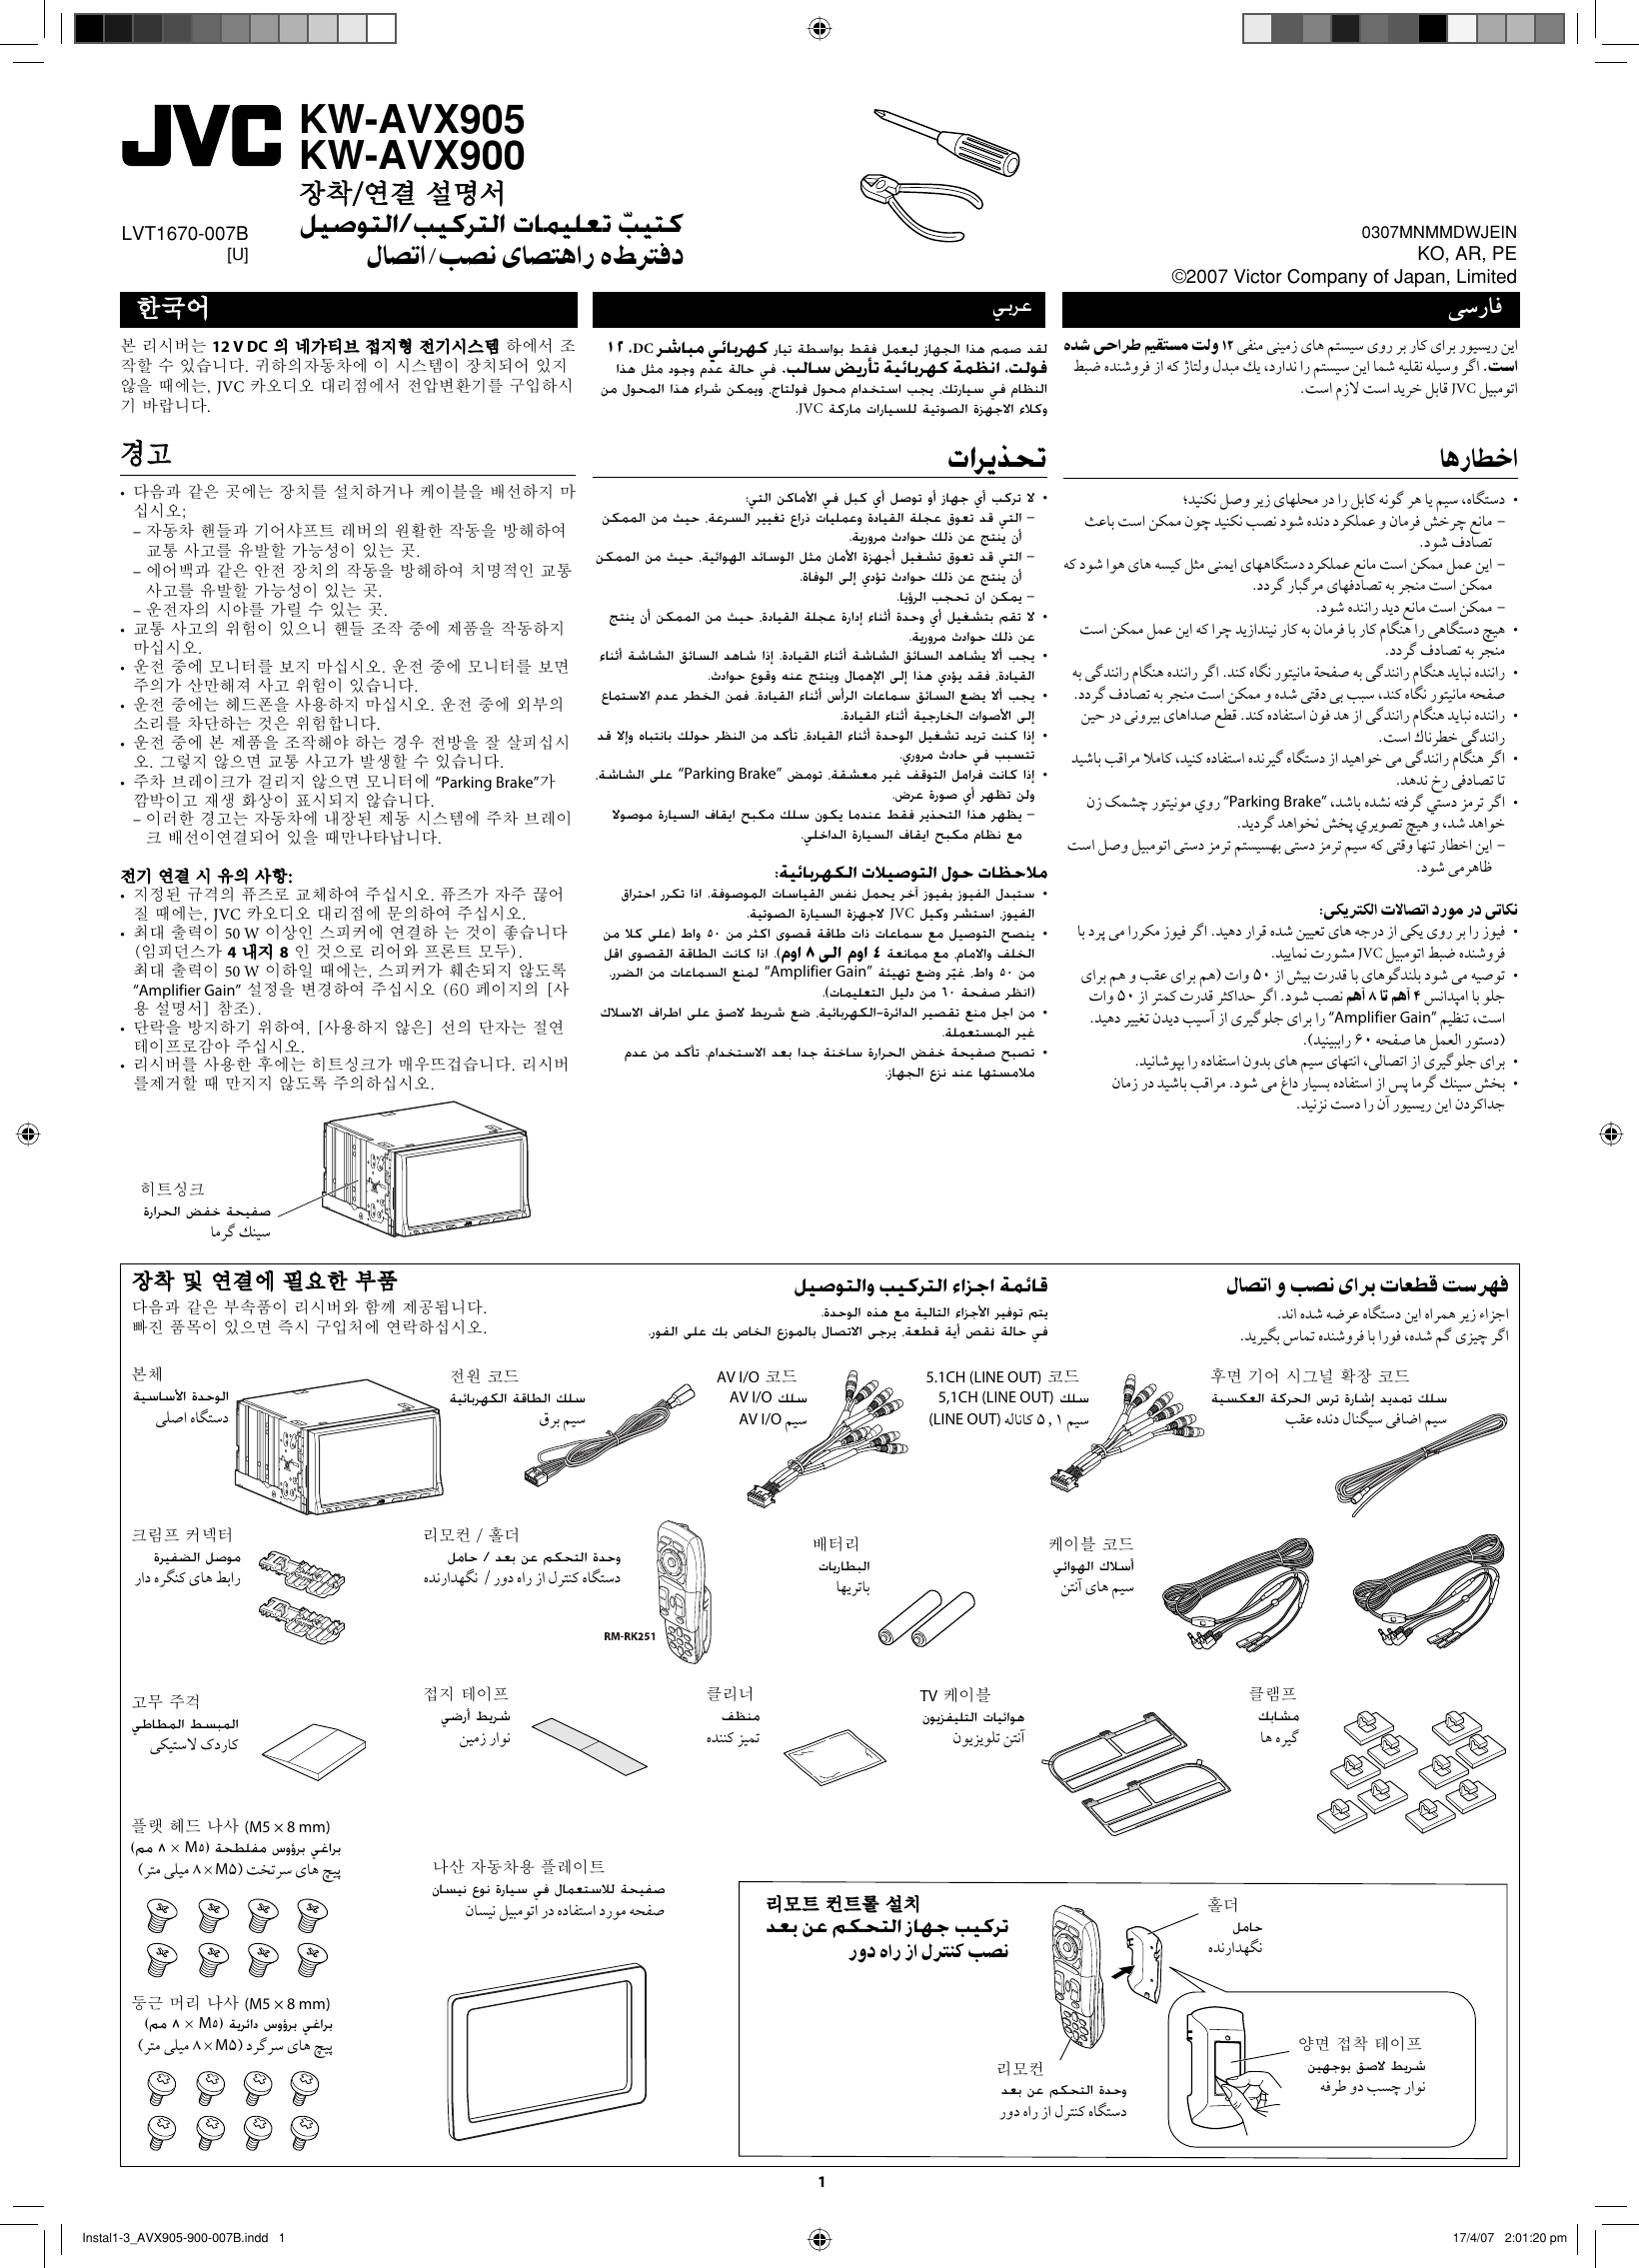 JVC KW AVX900U AVX905/KW AVX900[U] User Manual